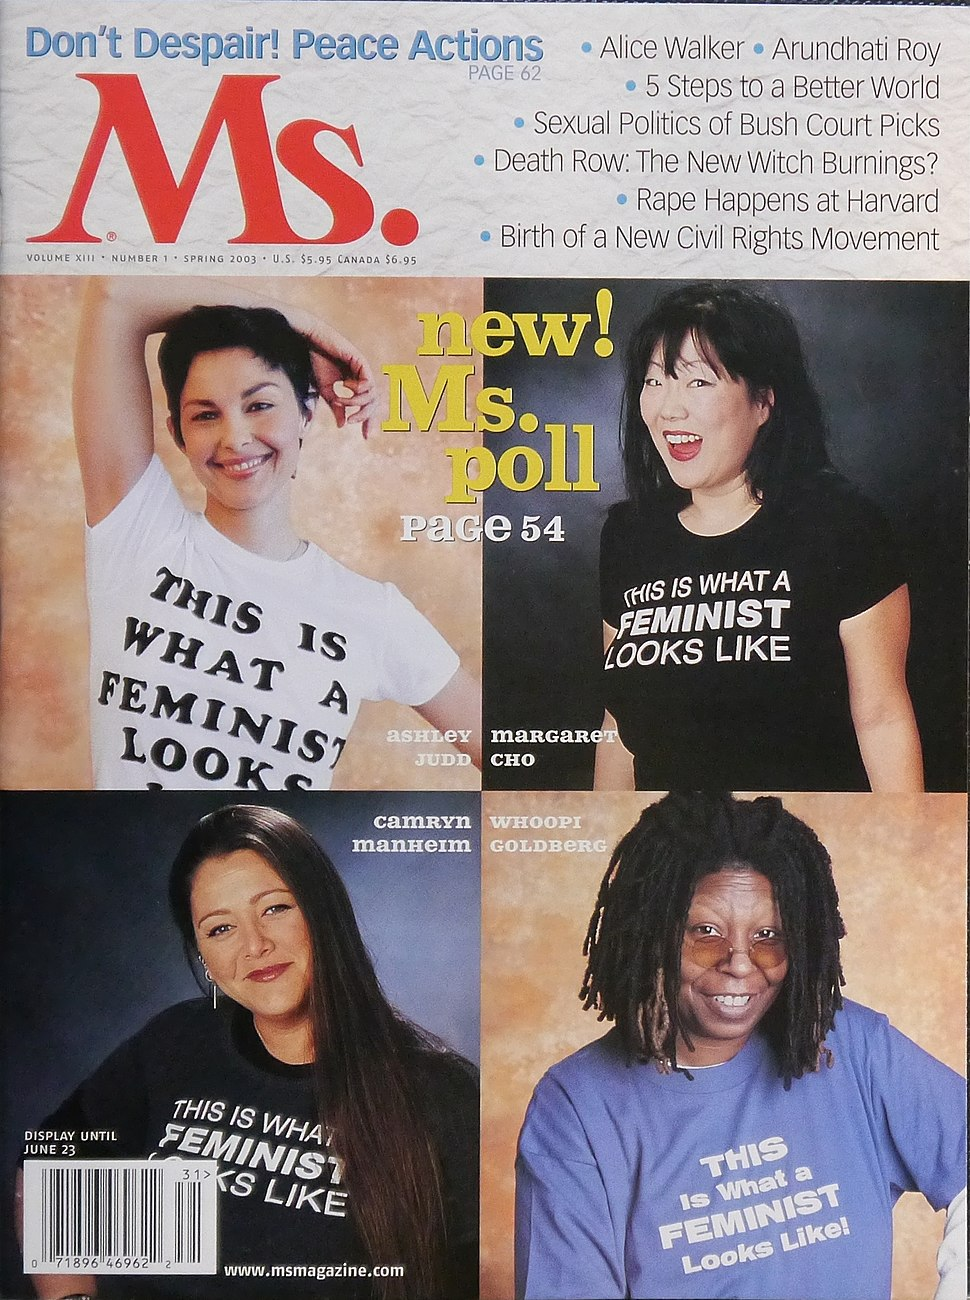 Ms. magazine Cover - Spring 2003